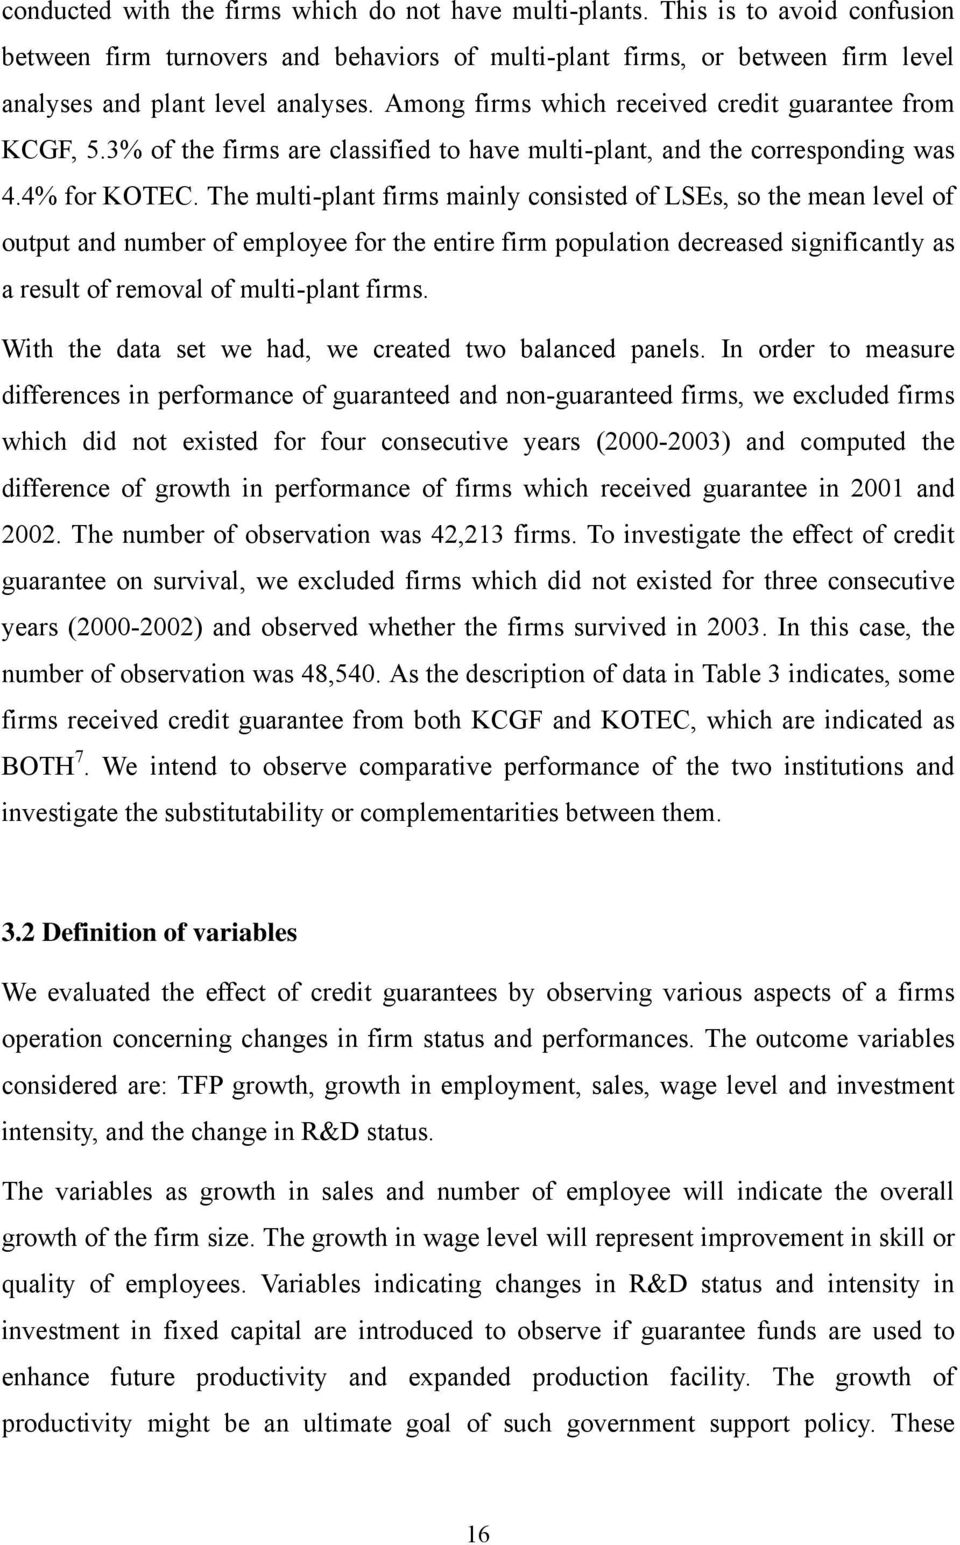 The multi-plant firms mainly consisted of LSEs, so the mean level of output and number of employee for the entire firm population decreased significantly as a result of removal of multi-plant firms.